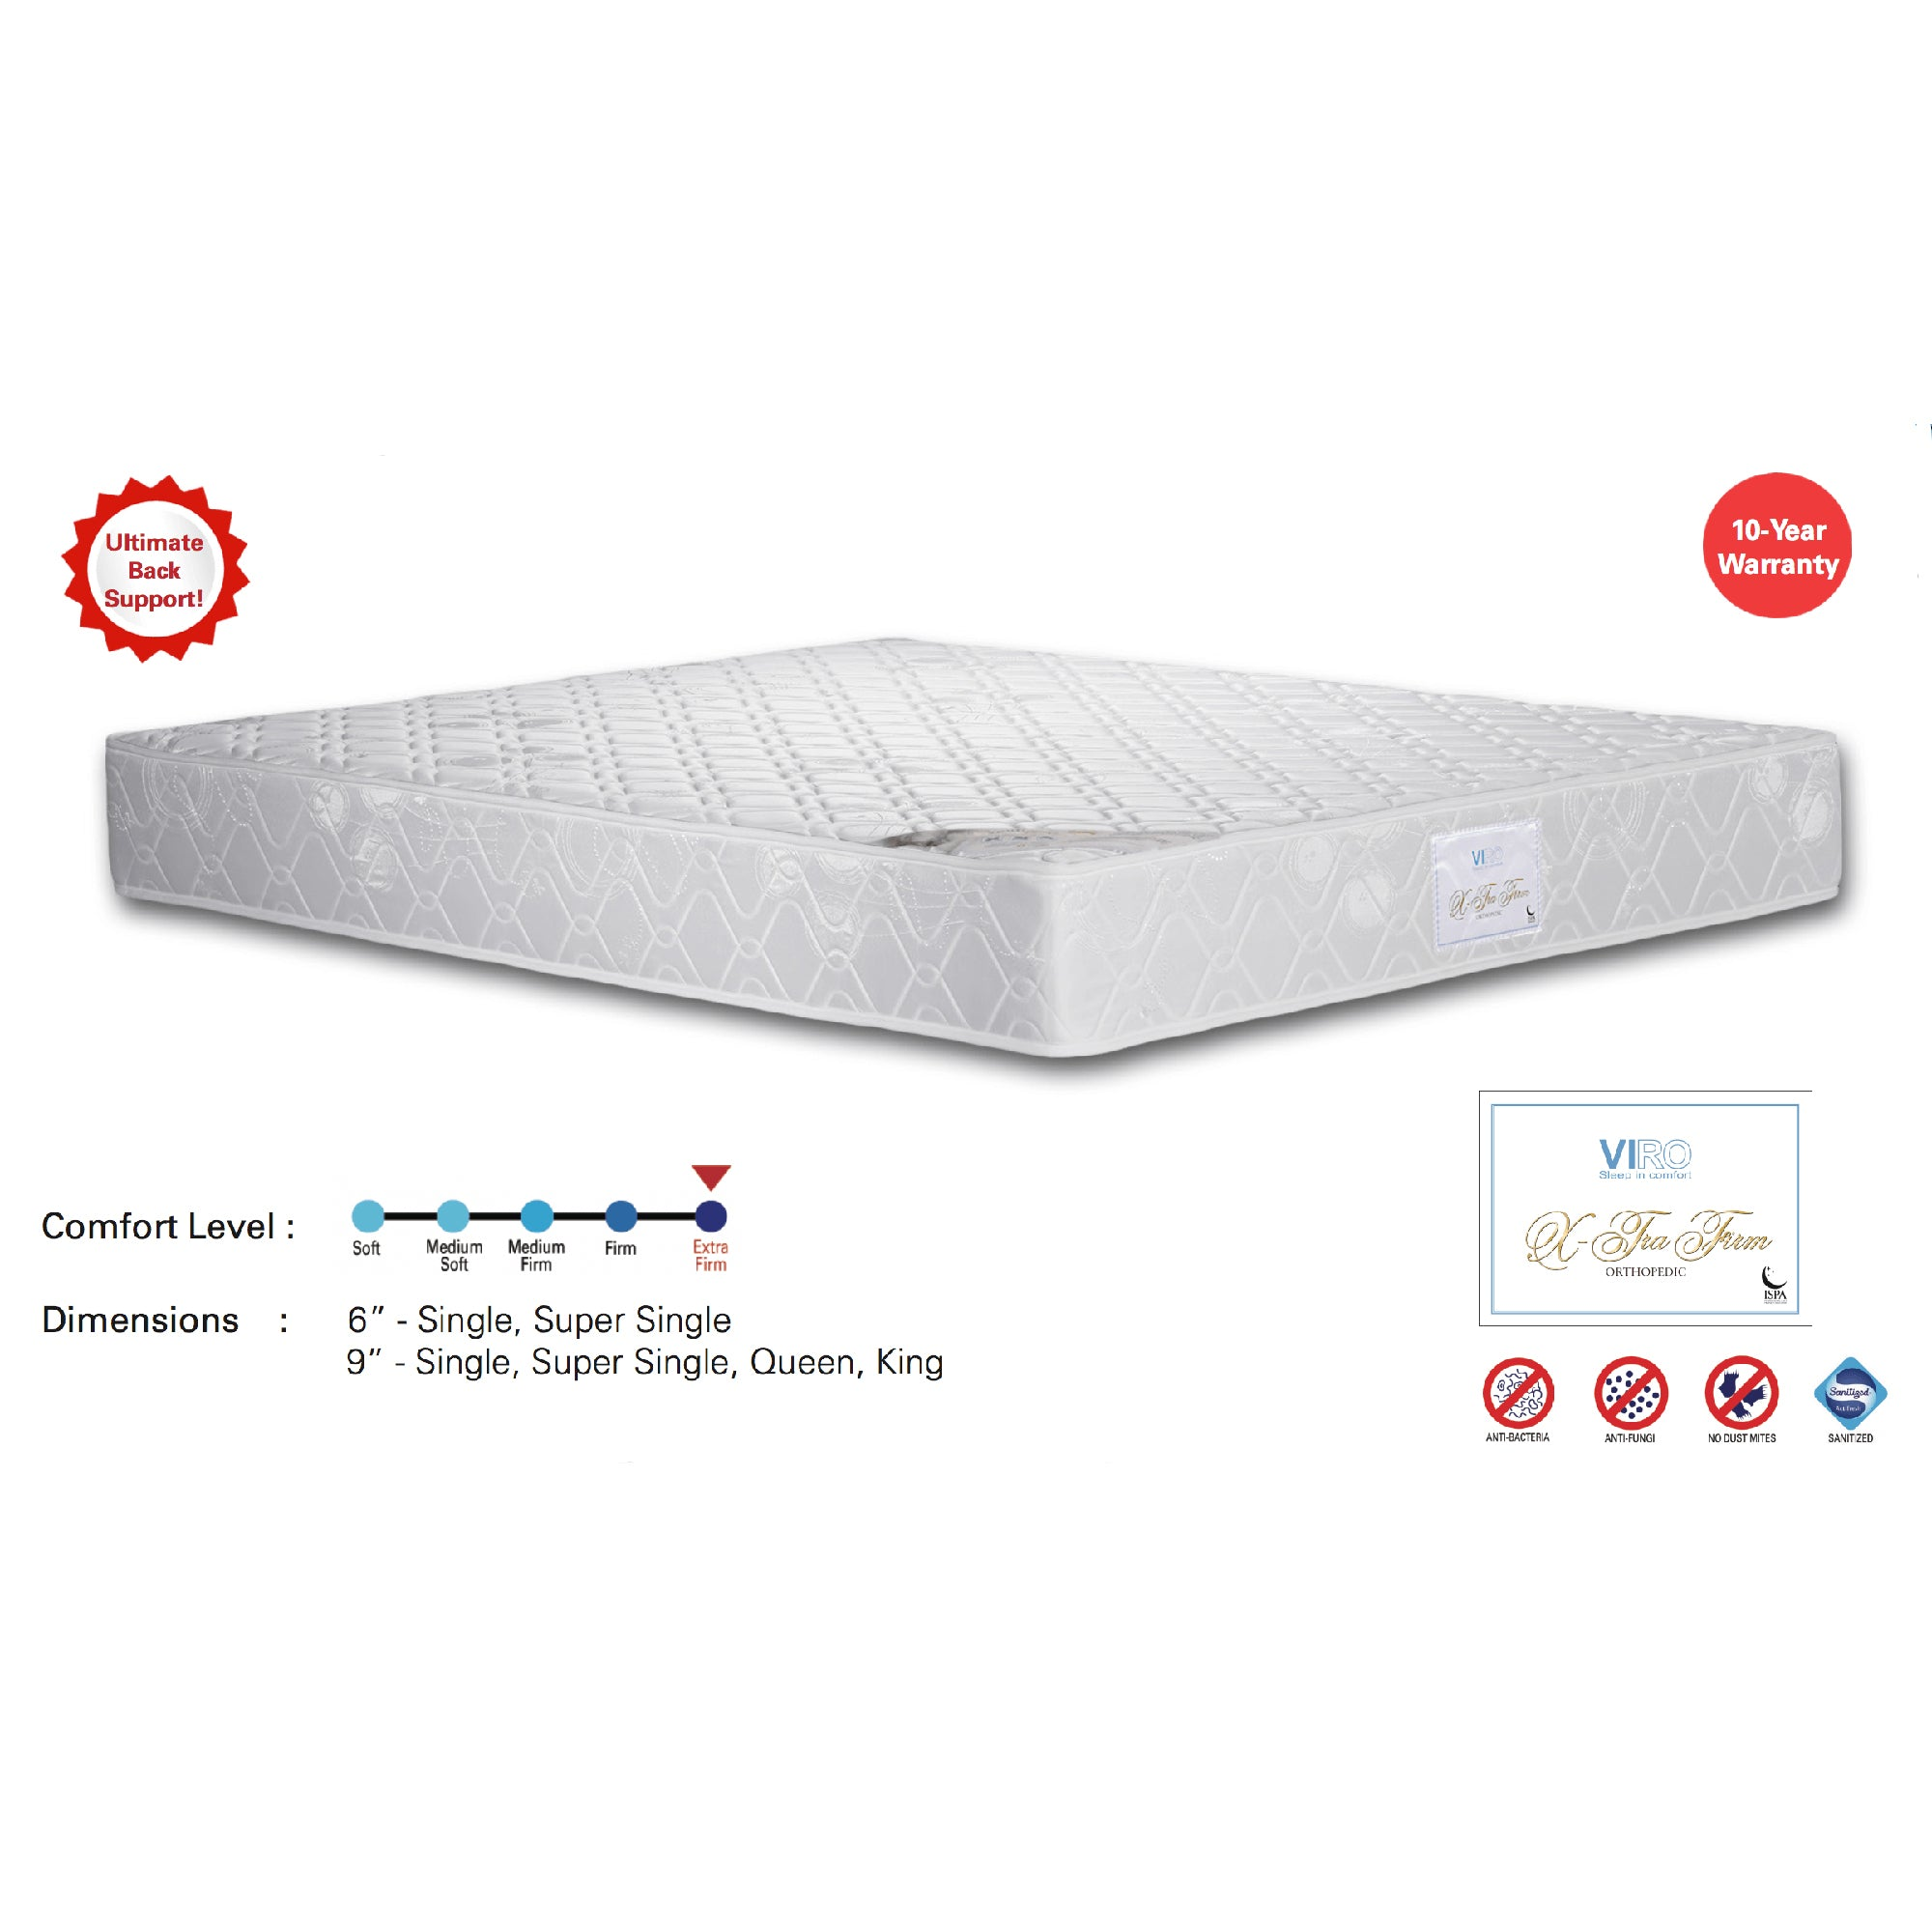 Viro X-Tra Firm Spring Mattress (5 Feet Queen Size x 9